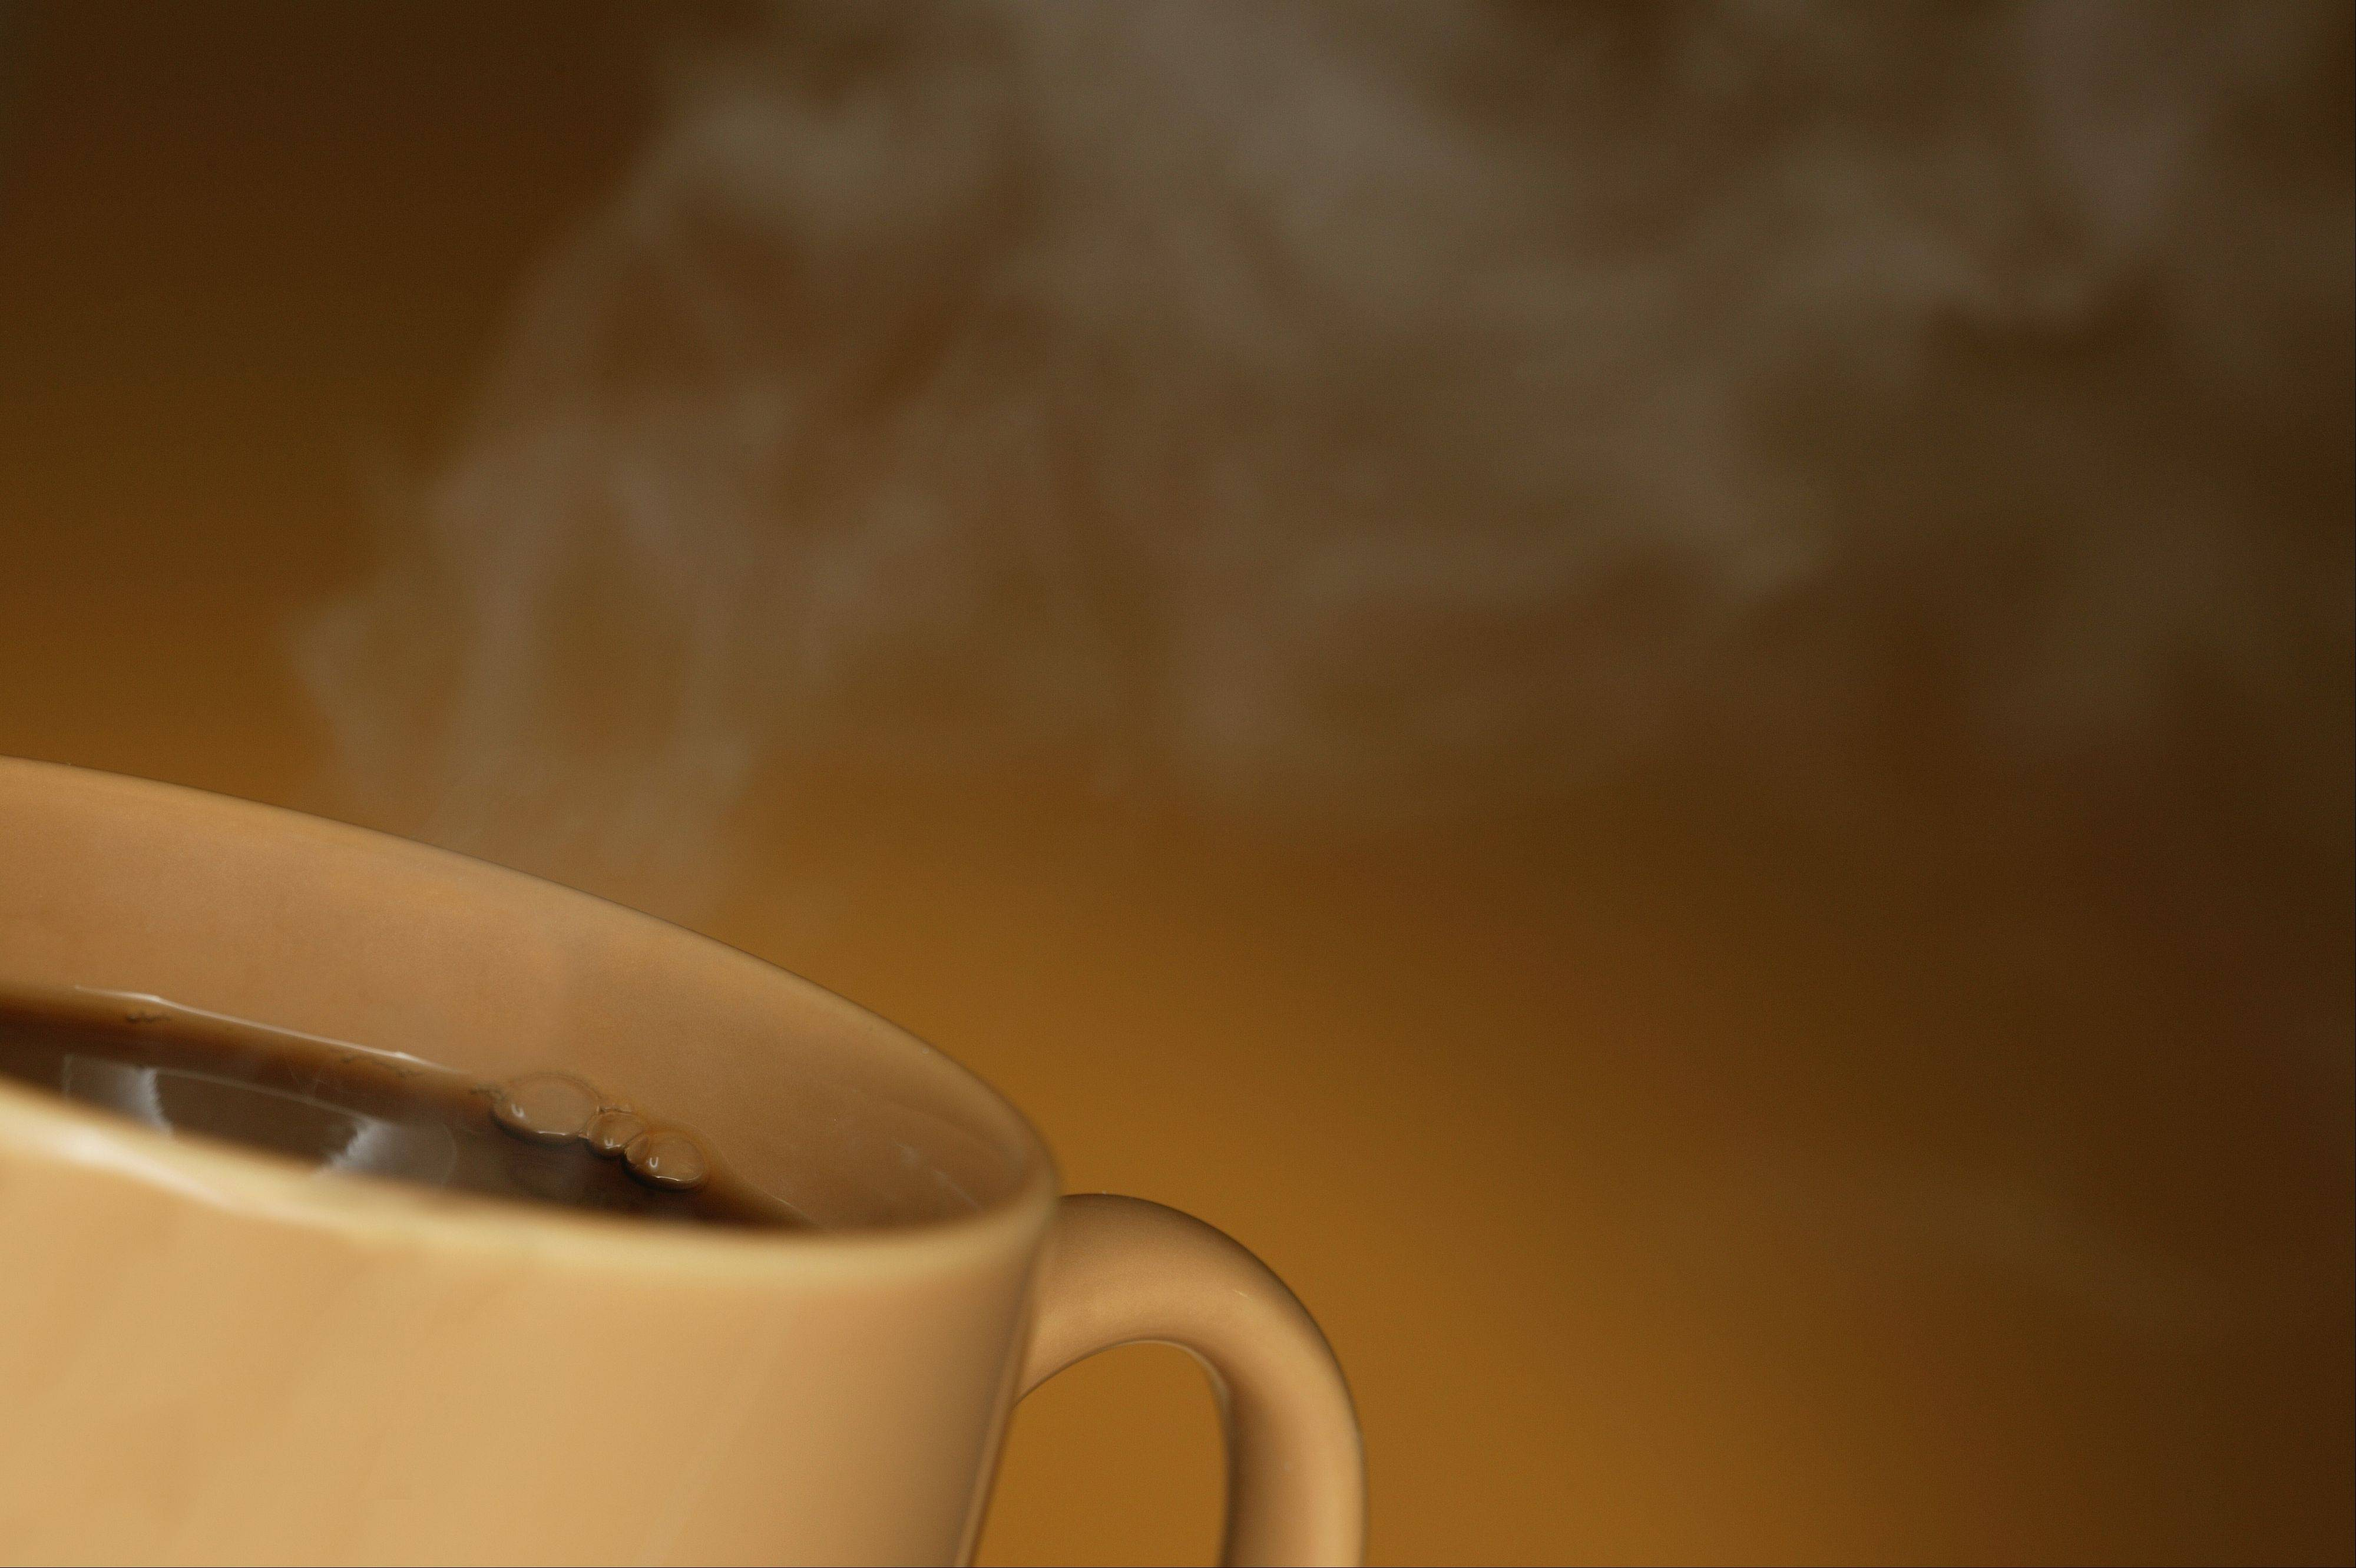 Local doctors suggest that kids not drink caffeine-containing drinks, such as coffee or energy drinks.